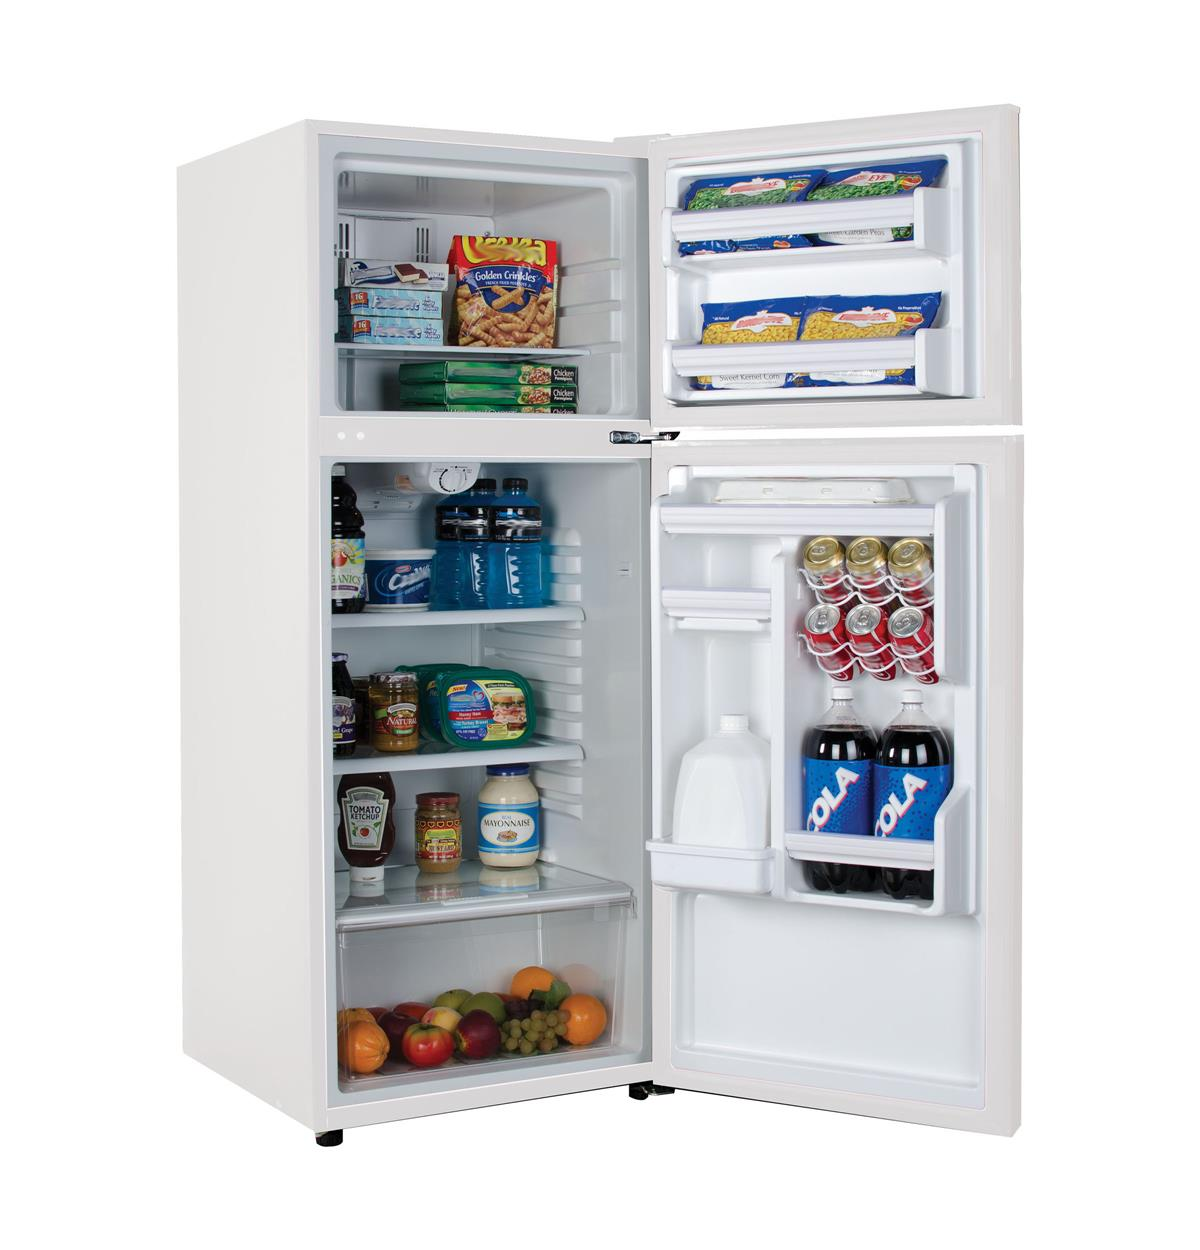 Ha10tg31sw 10 1 Cu Ft Top Freezer Refrigerator Haier